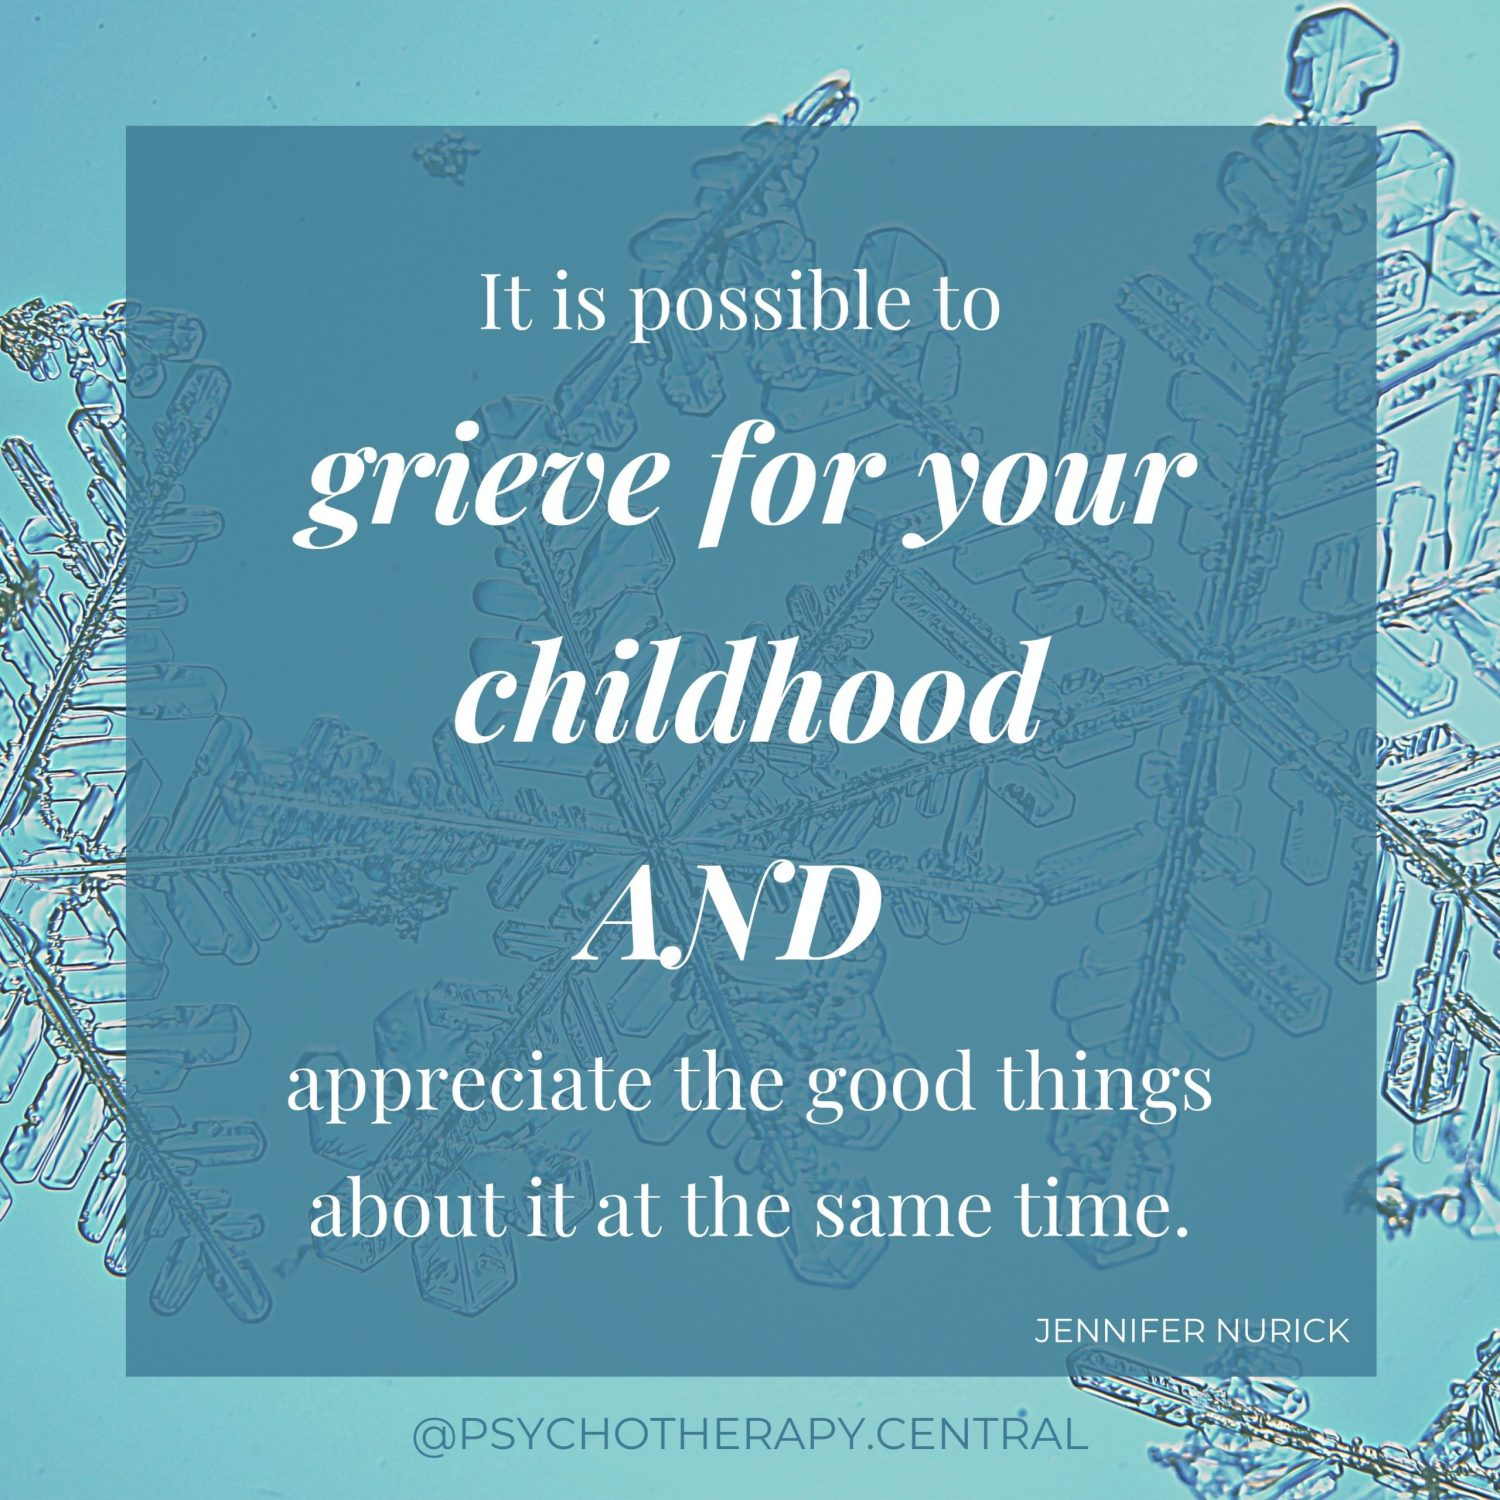 It Is Possible To Grieve For Your Childhood AND Appreciate The Good Things About It At The Same Time